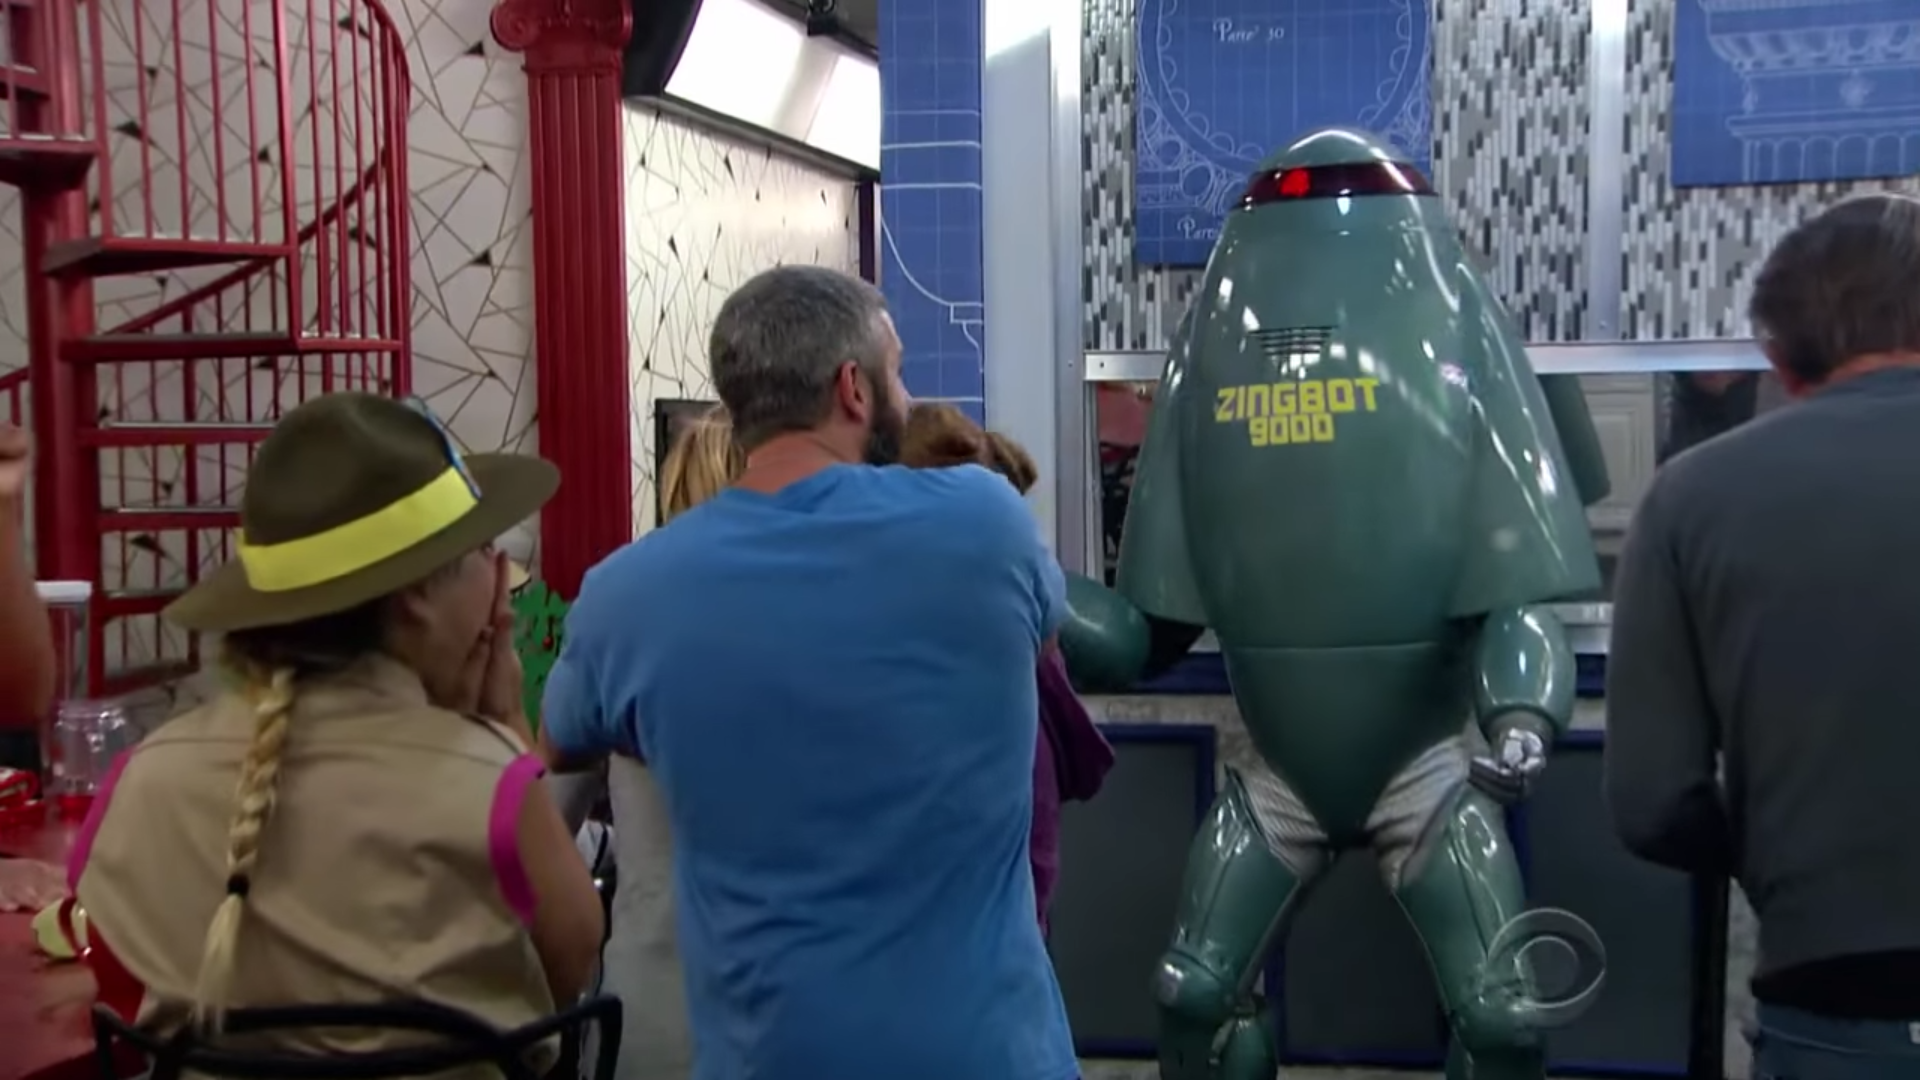 Big Brother 19 Live Recap Episode 27 – Zingbot Visits!